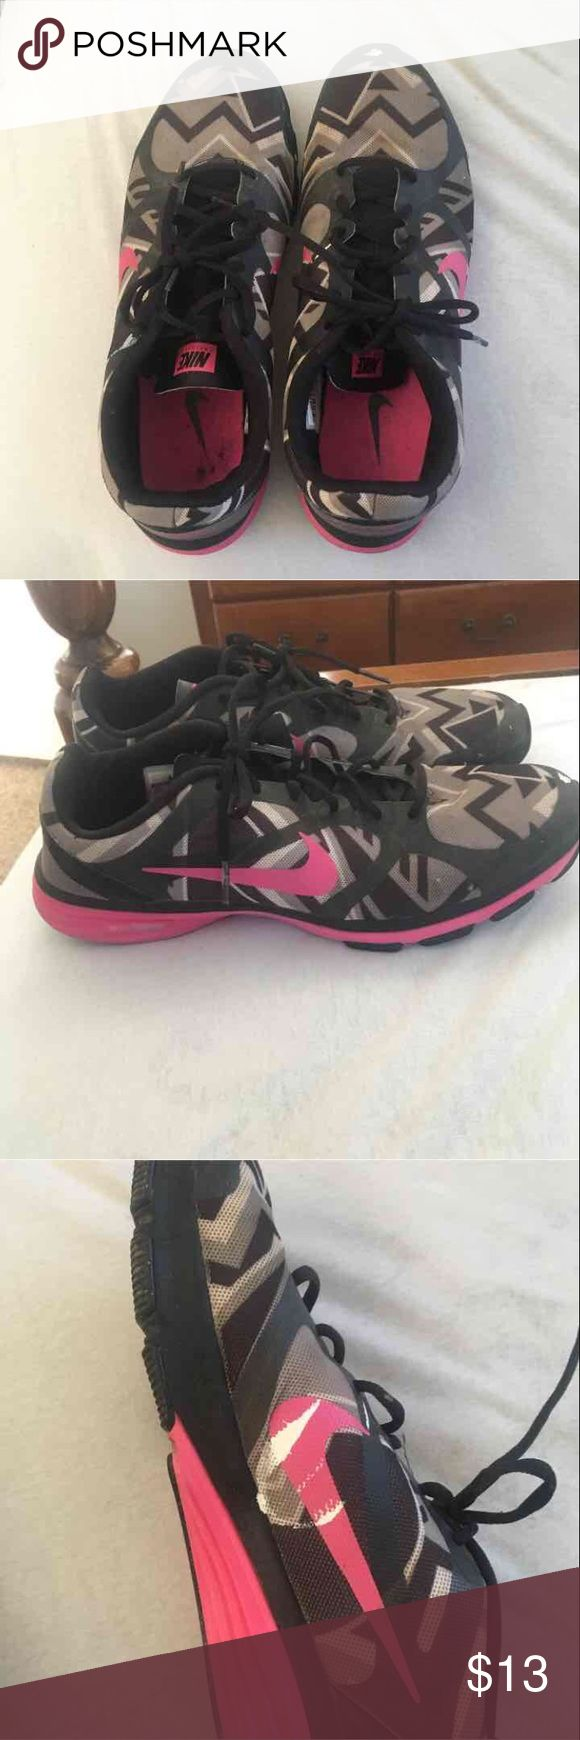 Men's Nike running shoes size 11.5 Men's Nike dual fusion training shoes for running size 11.5 they can still be used they do have some white paint in several spots i wasn't able to get off. Nike Shoes Athletic Shoes